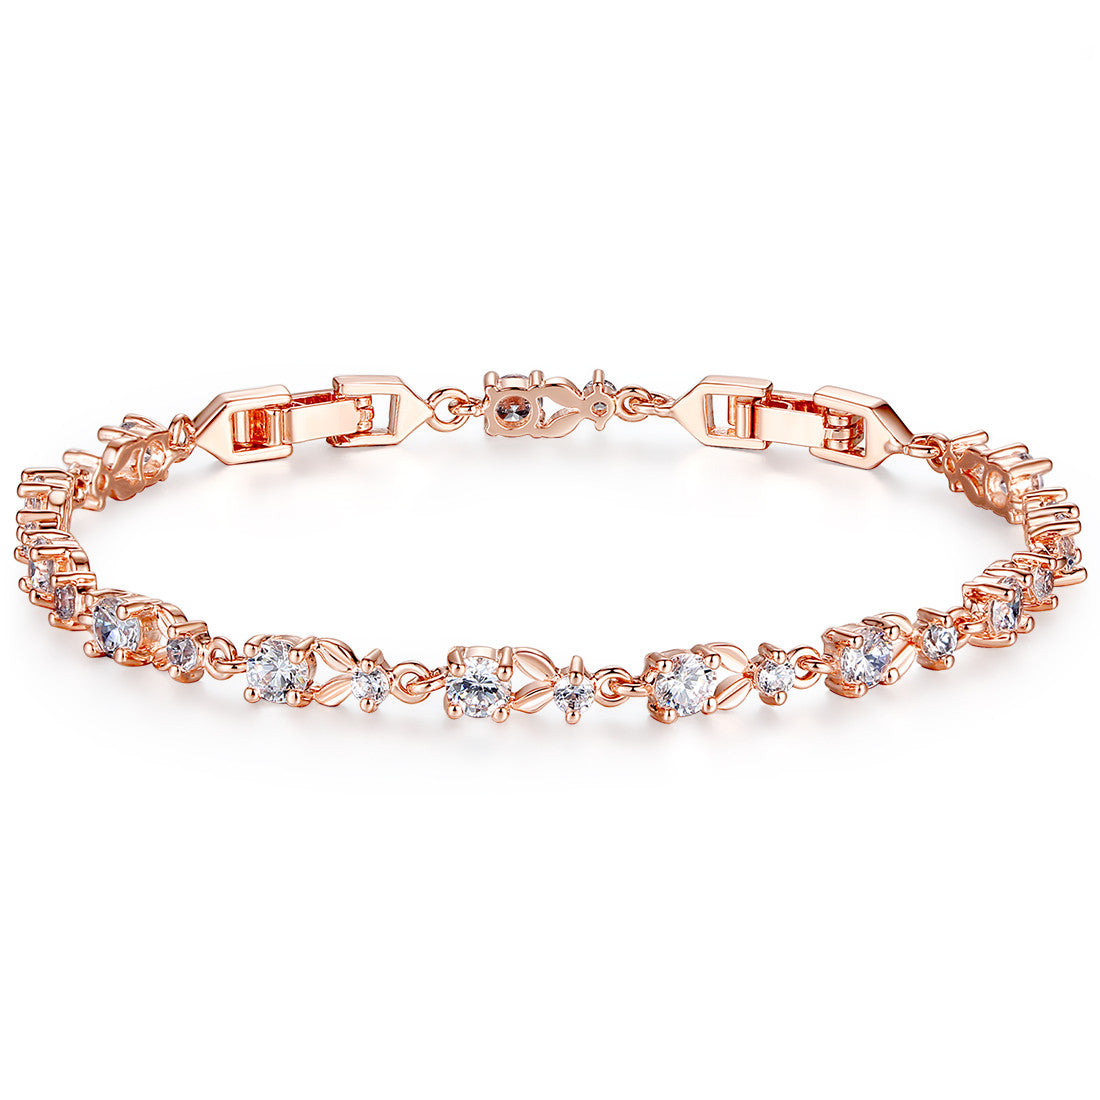 Colorful Aaa Cubic Zirconia Gold Plated Copper Link Charm Bracelets  Adjustable Size 17,19 Cm